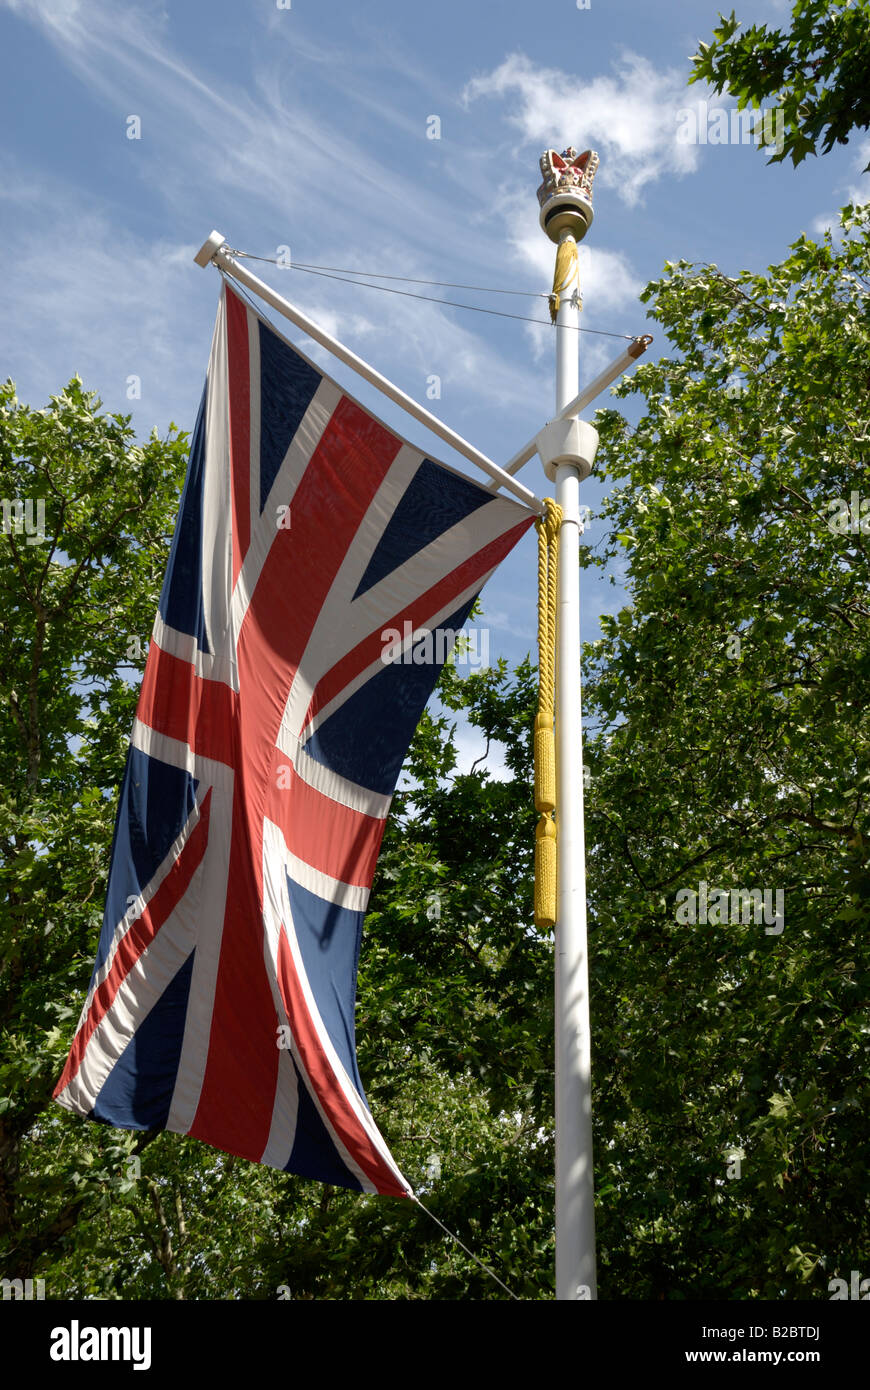 British flag on flagpole with trees in background, London - Stock Image